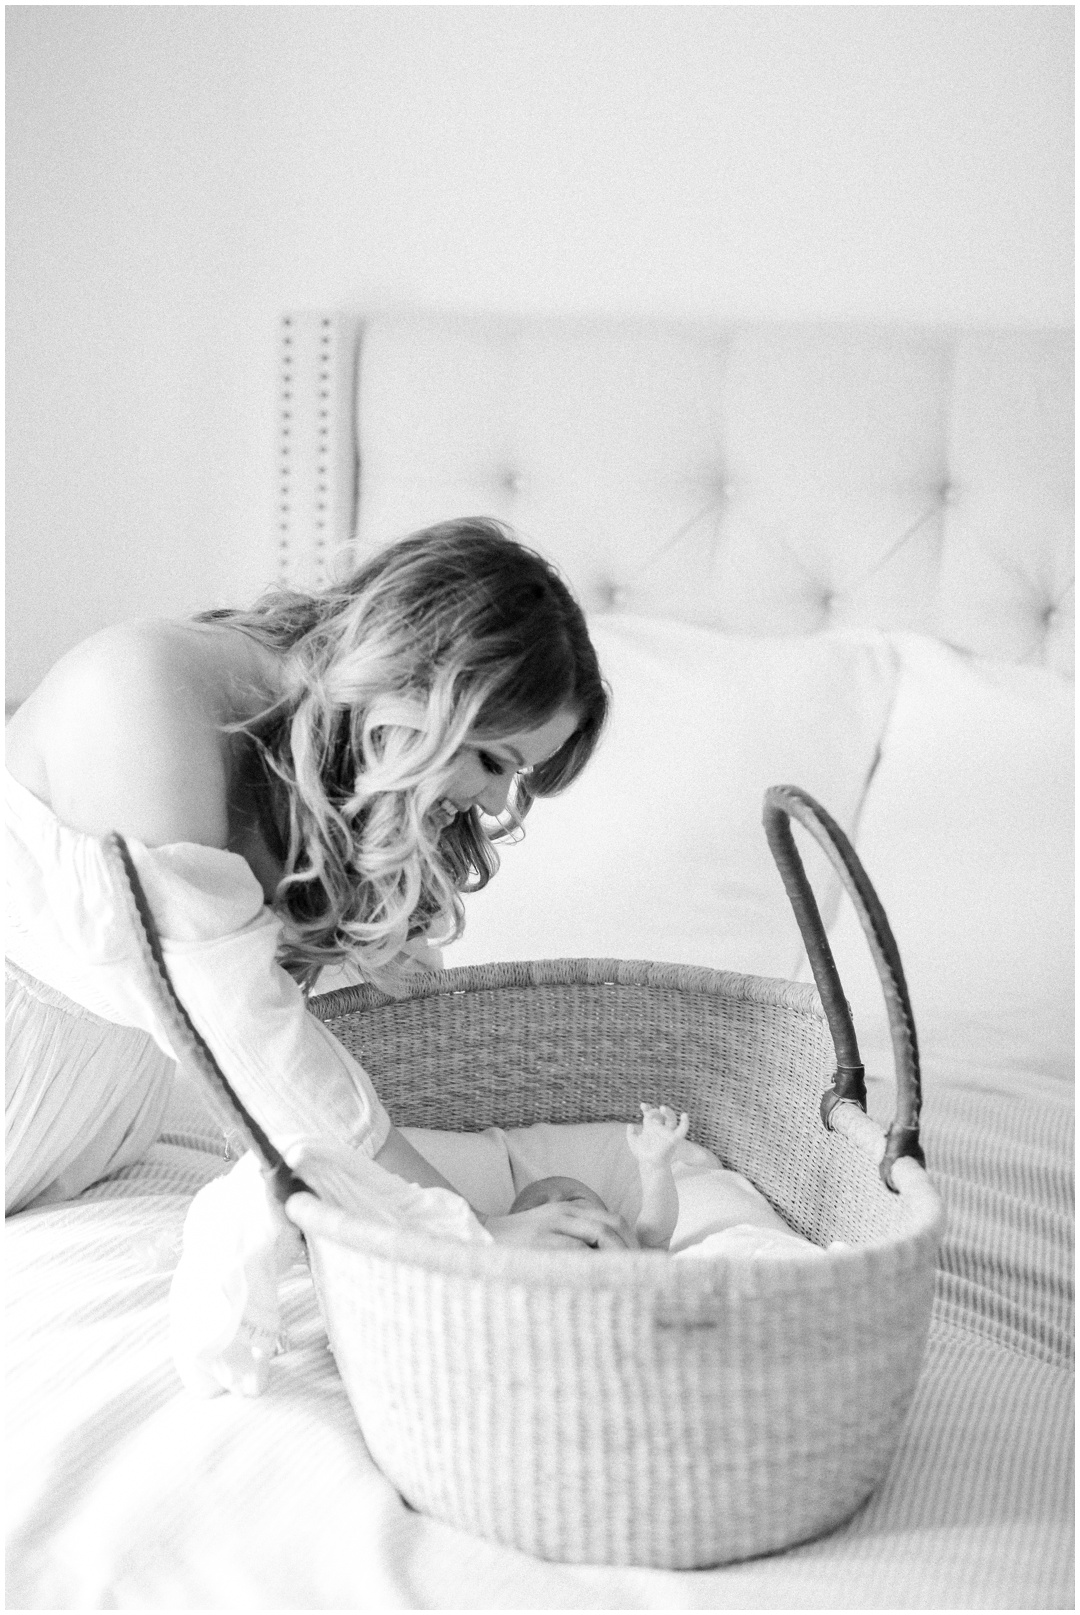 Newport_Beach_Newborn_Light_Airy_Natural_Photographer_Newport_Beach_In-Home_Photographer_Orange_County_Family_Photographer_Cori_Kleckner_Photography_Huntington_Beach_Photographer_Family_OC_Newborn_Meghan_Sullivan_Newborn_Family_Greer_Sullivan_3235.jpg